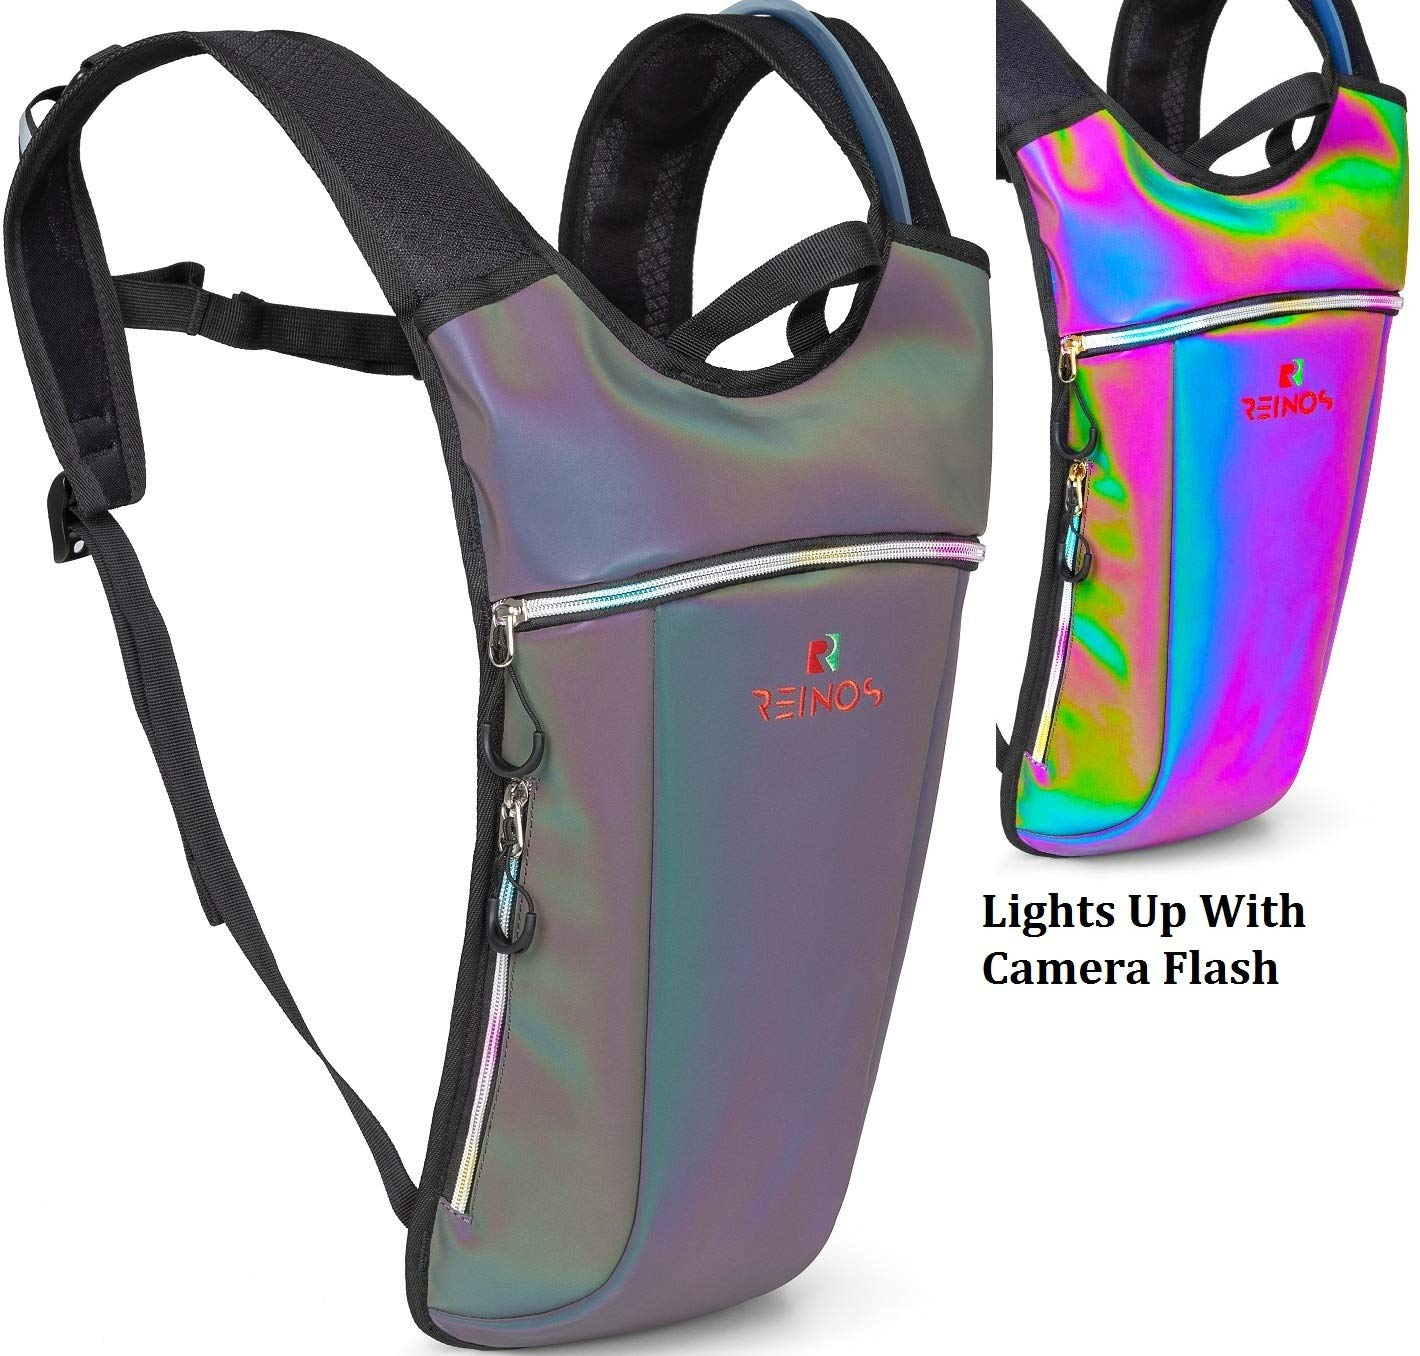 Hydration Backpack – Light Water Pack – 2L Water Bladder Included for Running, Hiking, Biking, Festivals, Raves